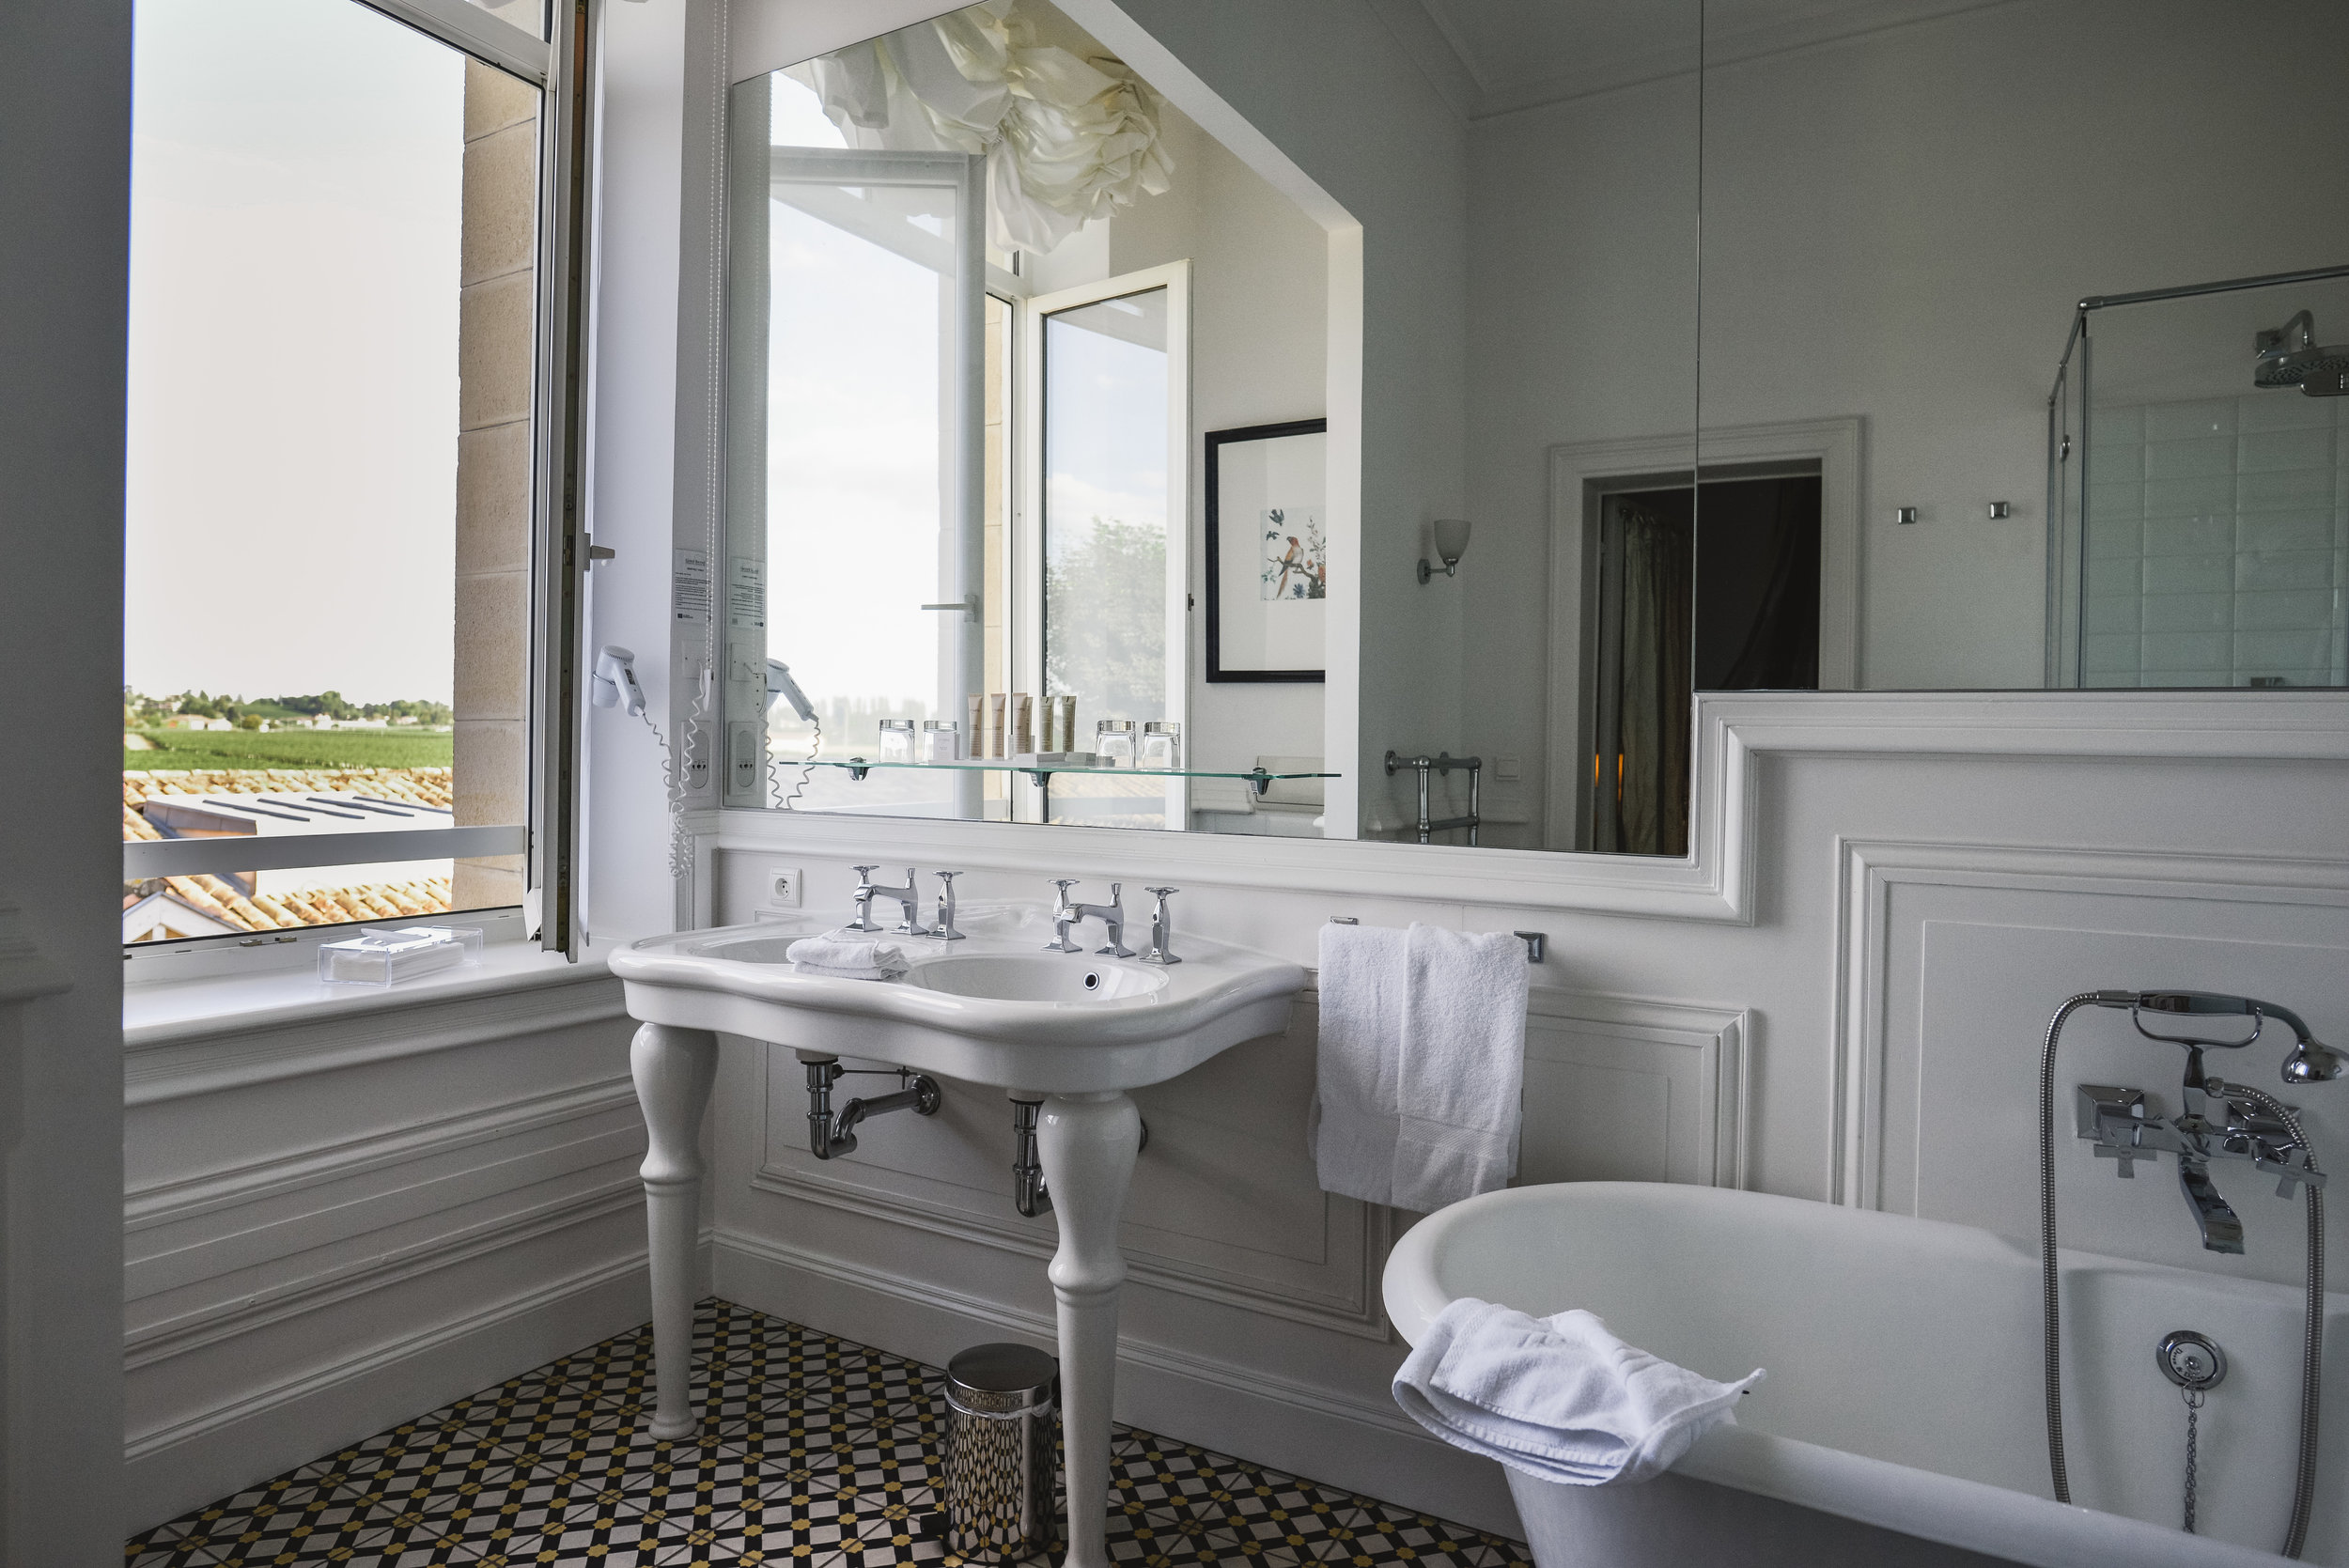 The fabulously classic bathroom in our chateau suite - complete with artisan tile flooring and a chic claw-foot tub.